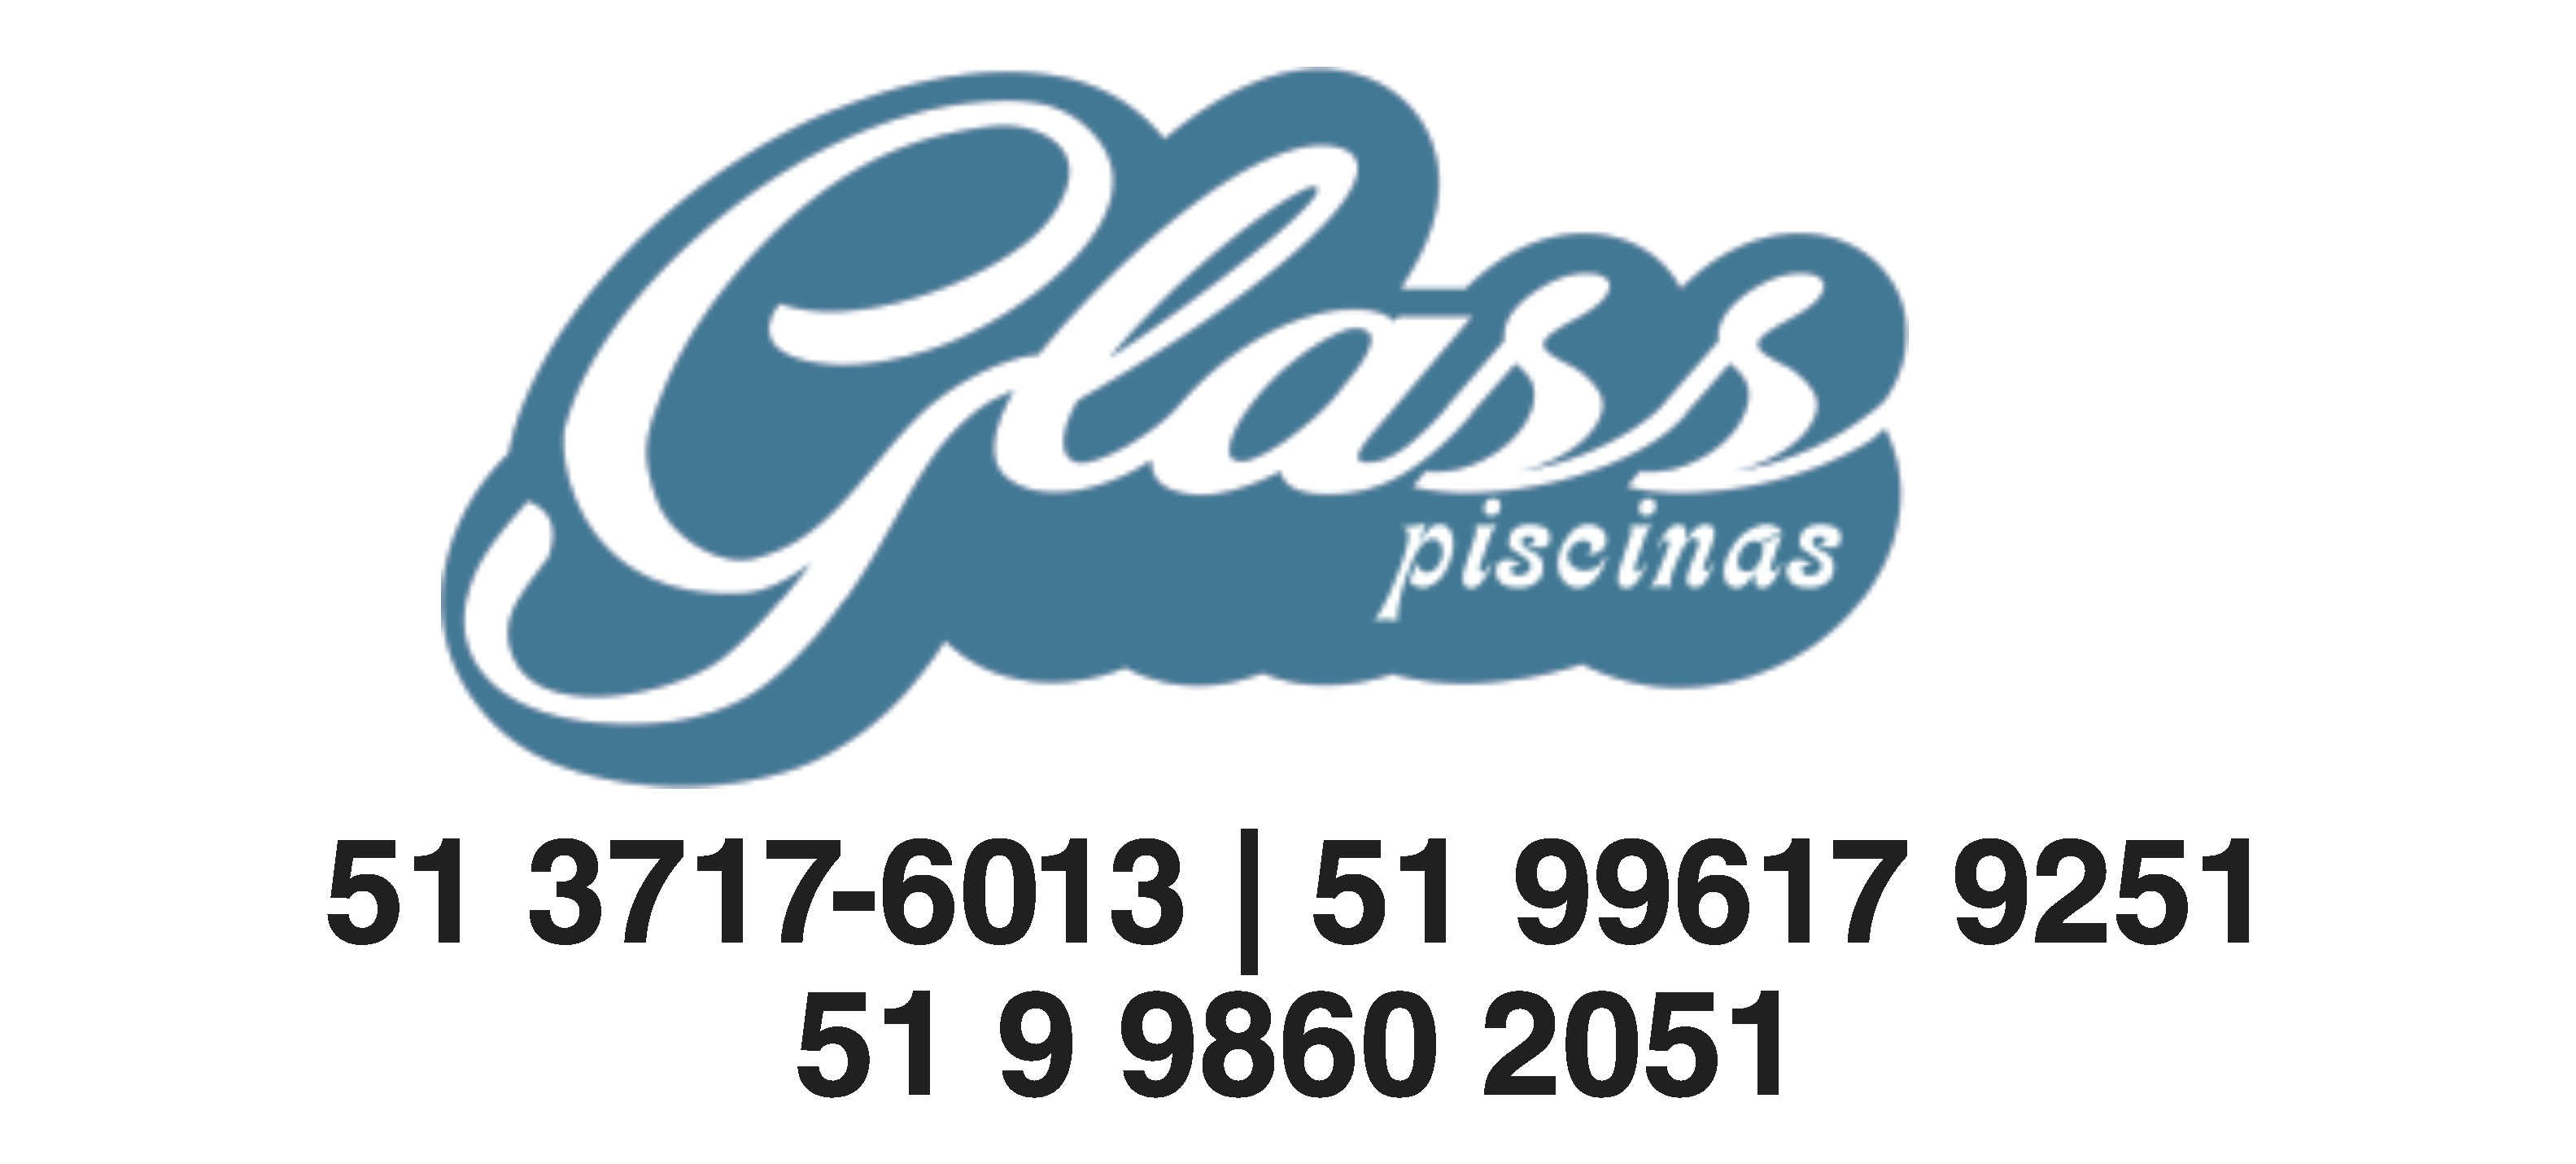 Glass Piscinas